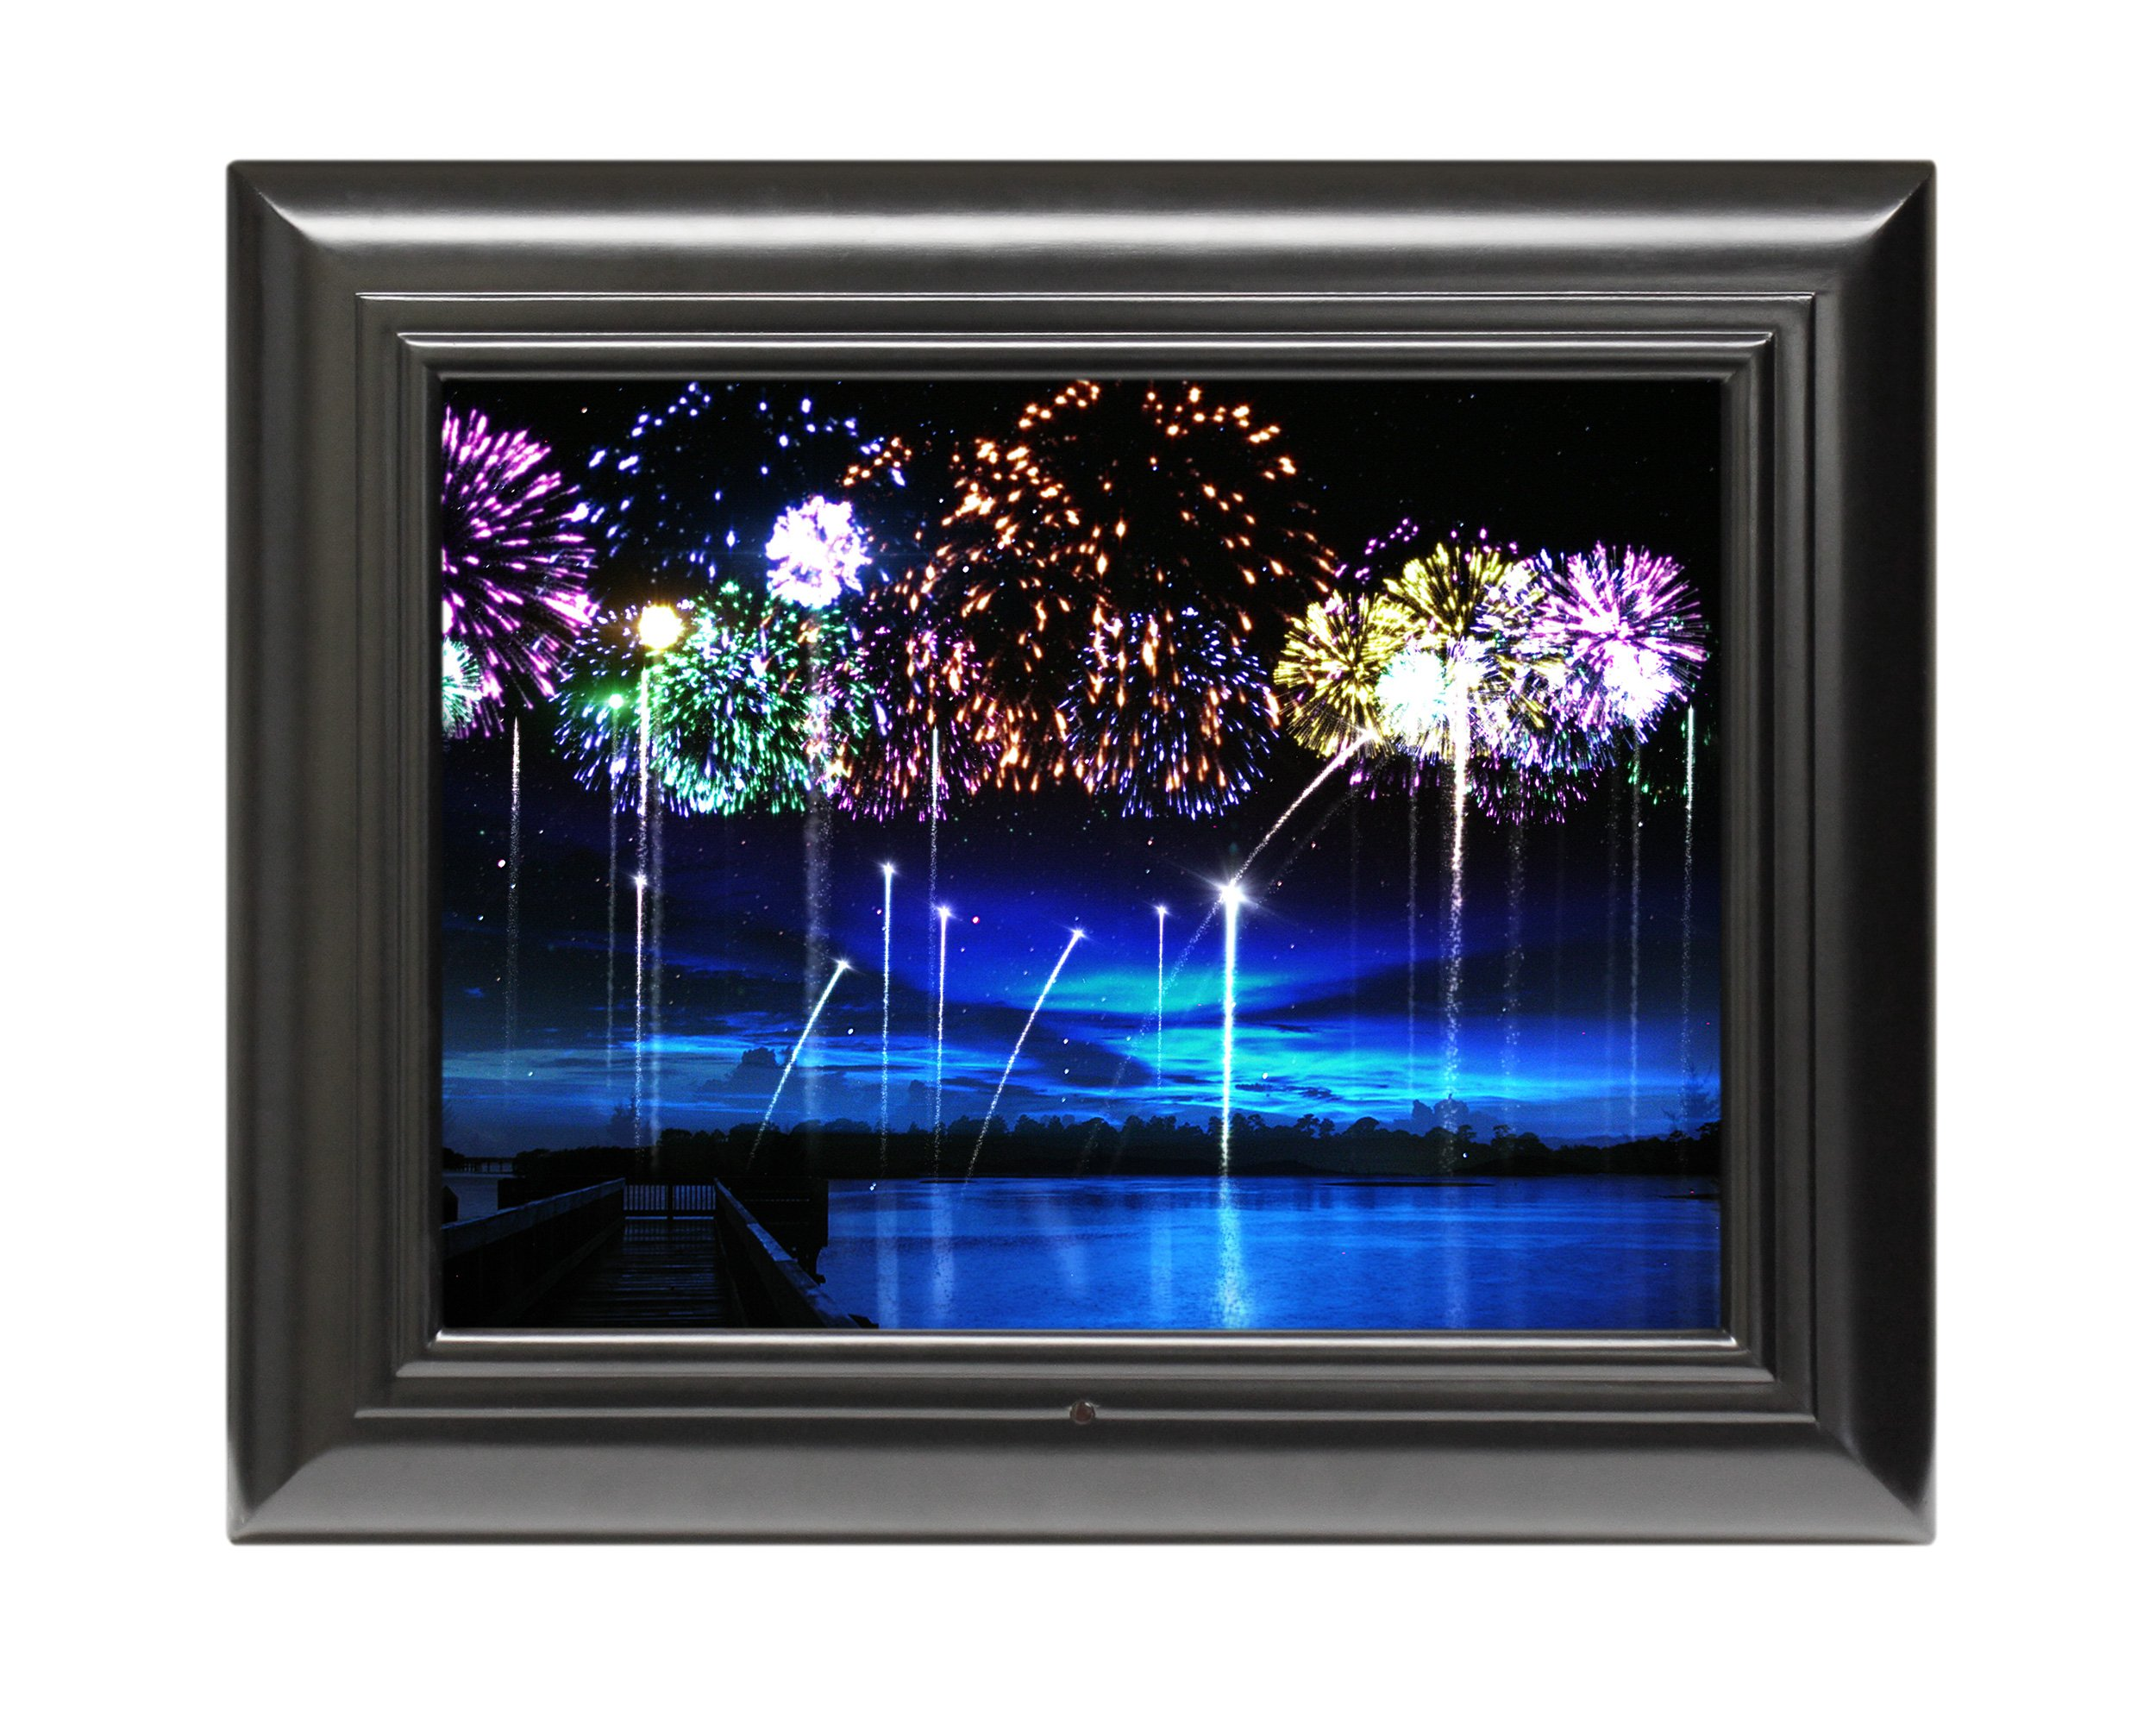 FrameWizard 15-Inch Digital Picture Frame Includes MatteMagic, ElementEffects, and MovingMemories (Black)